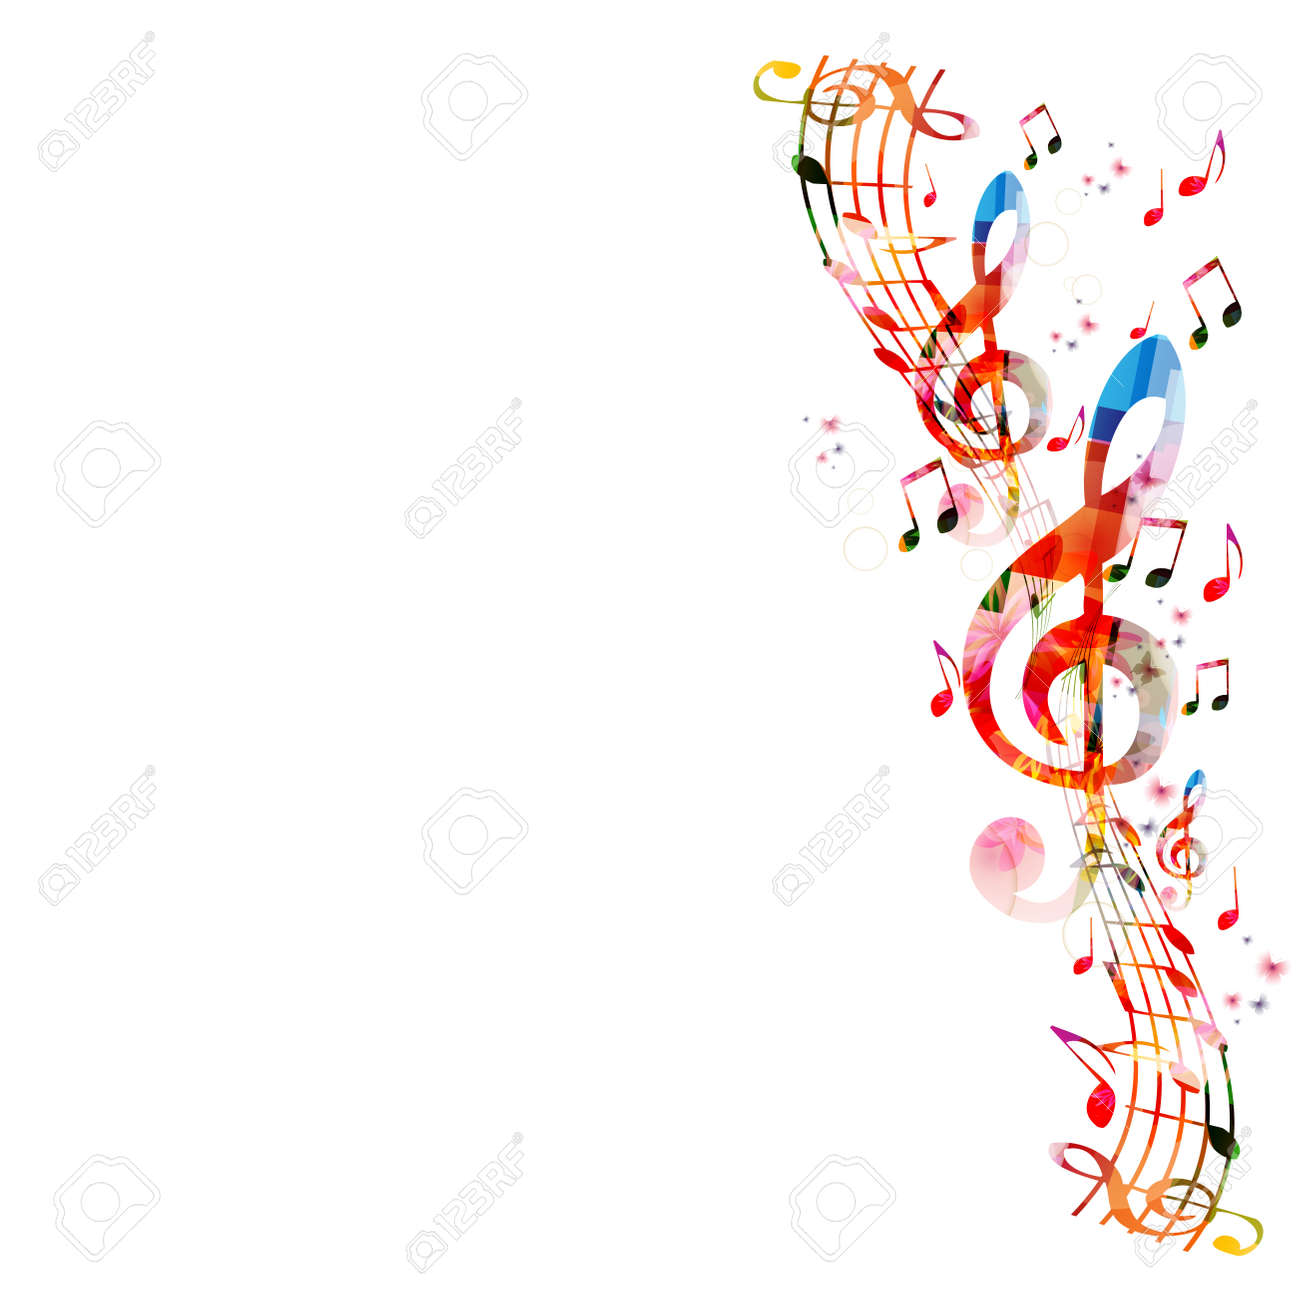 Music notes background - 43850249